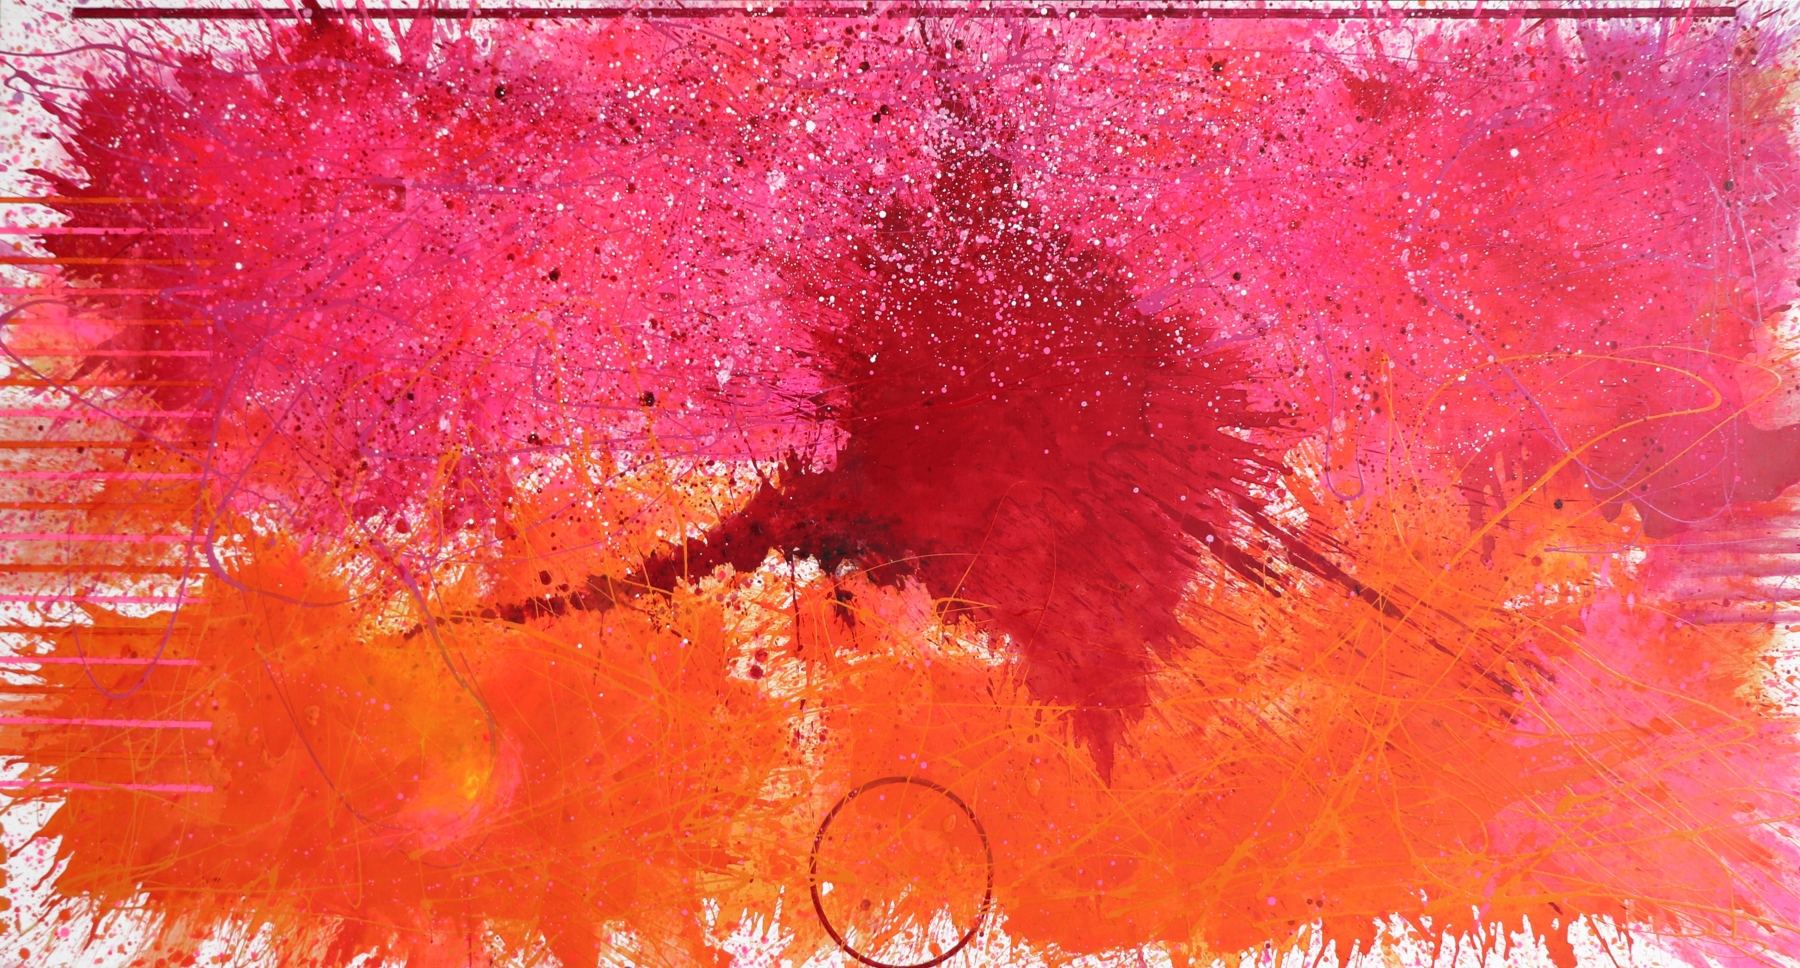 J. Steven Manolis, Flamingo, 2019, Acrylic and Latex Enamel painting on canvas, 72 x 120 inches, Flamingo Art, Pink Abstract art for sale at Manolis Projects Art Gallery, Miami, Fl